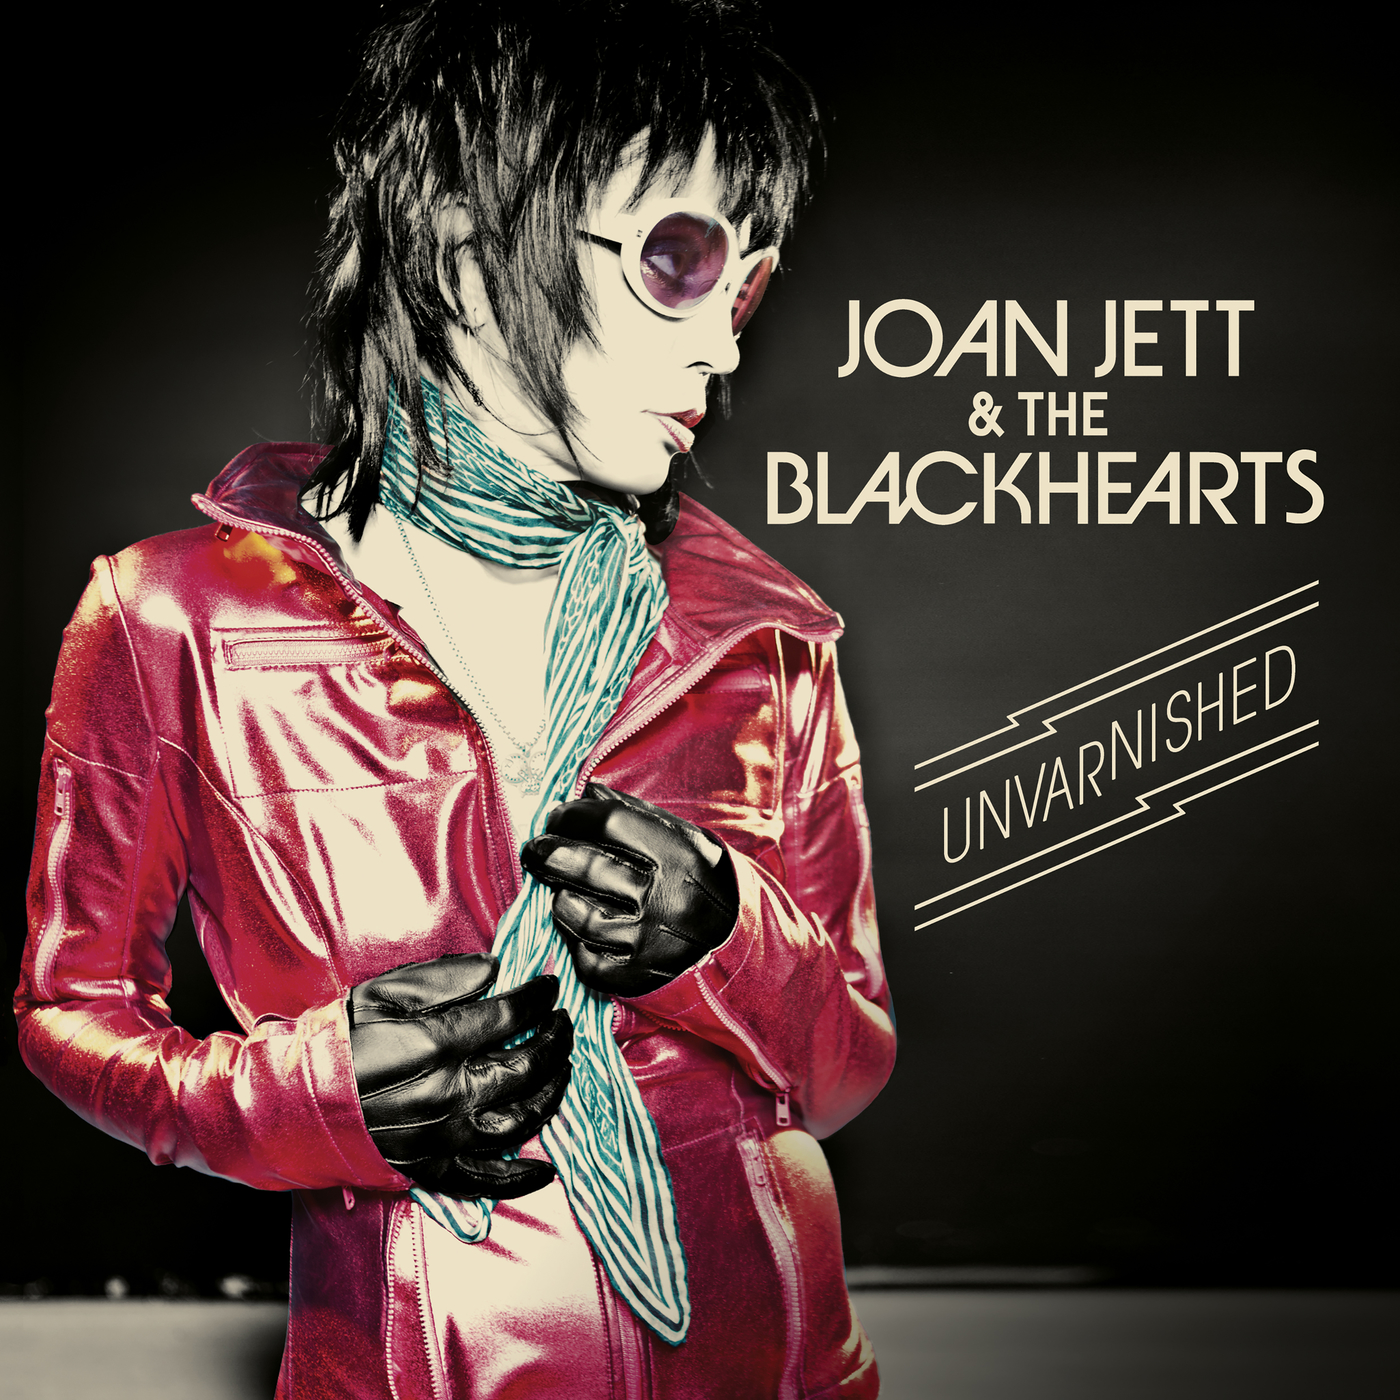 Unvarnished (Expanded Edition) - Joan Jett & The Blackhearts